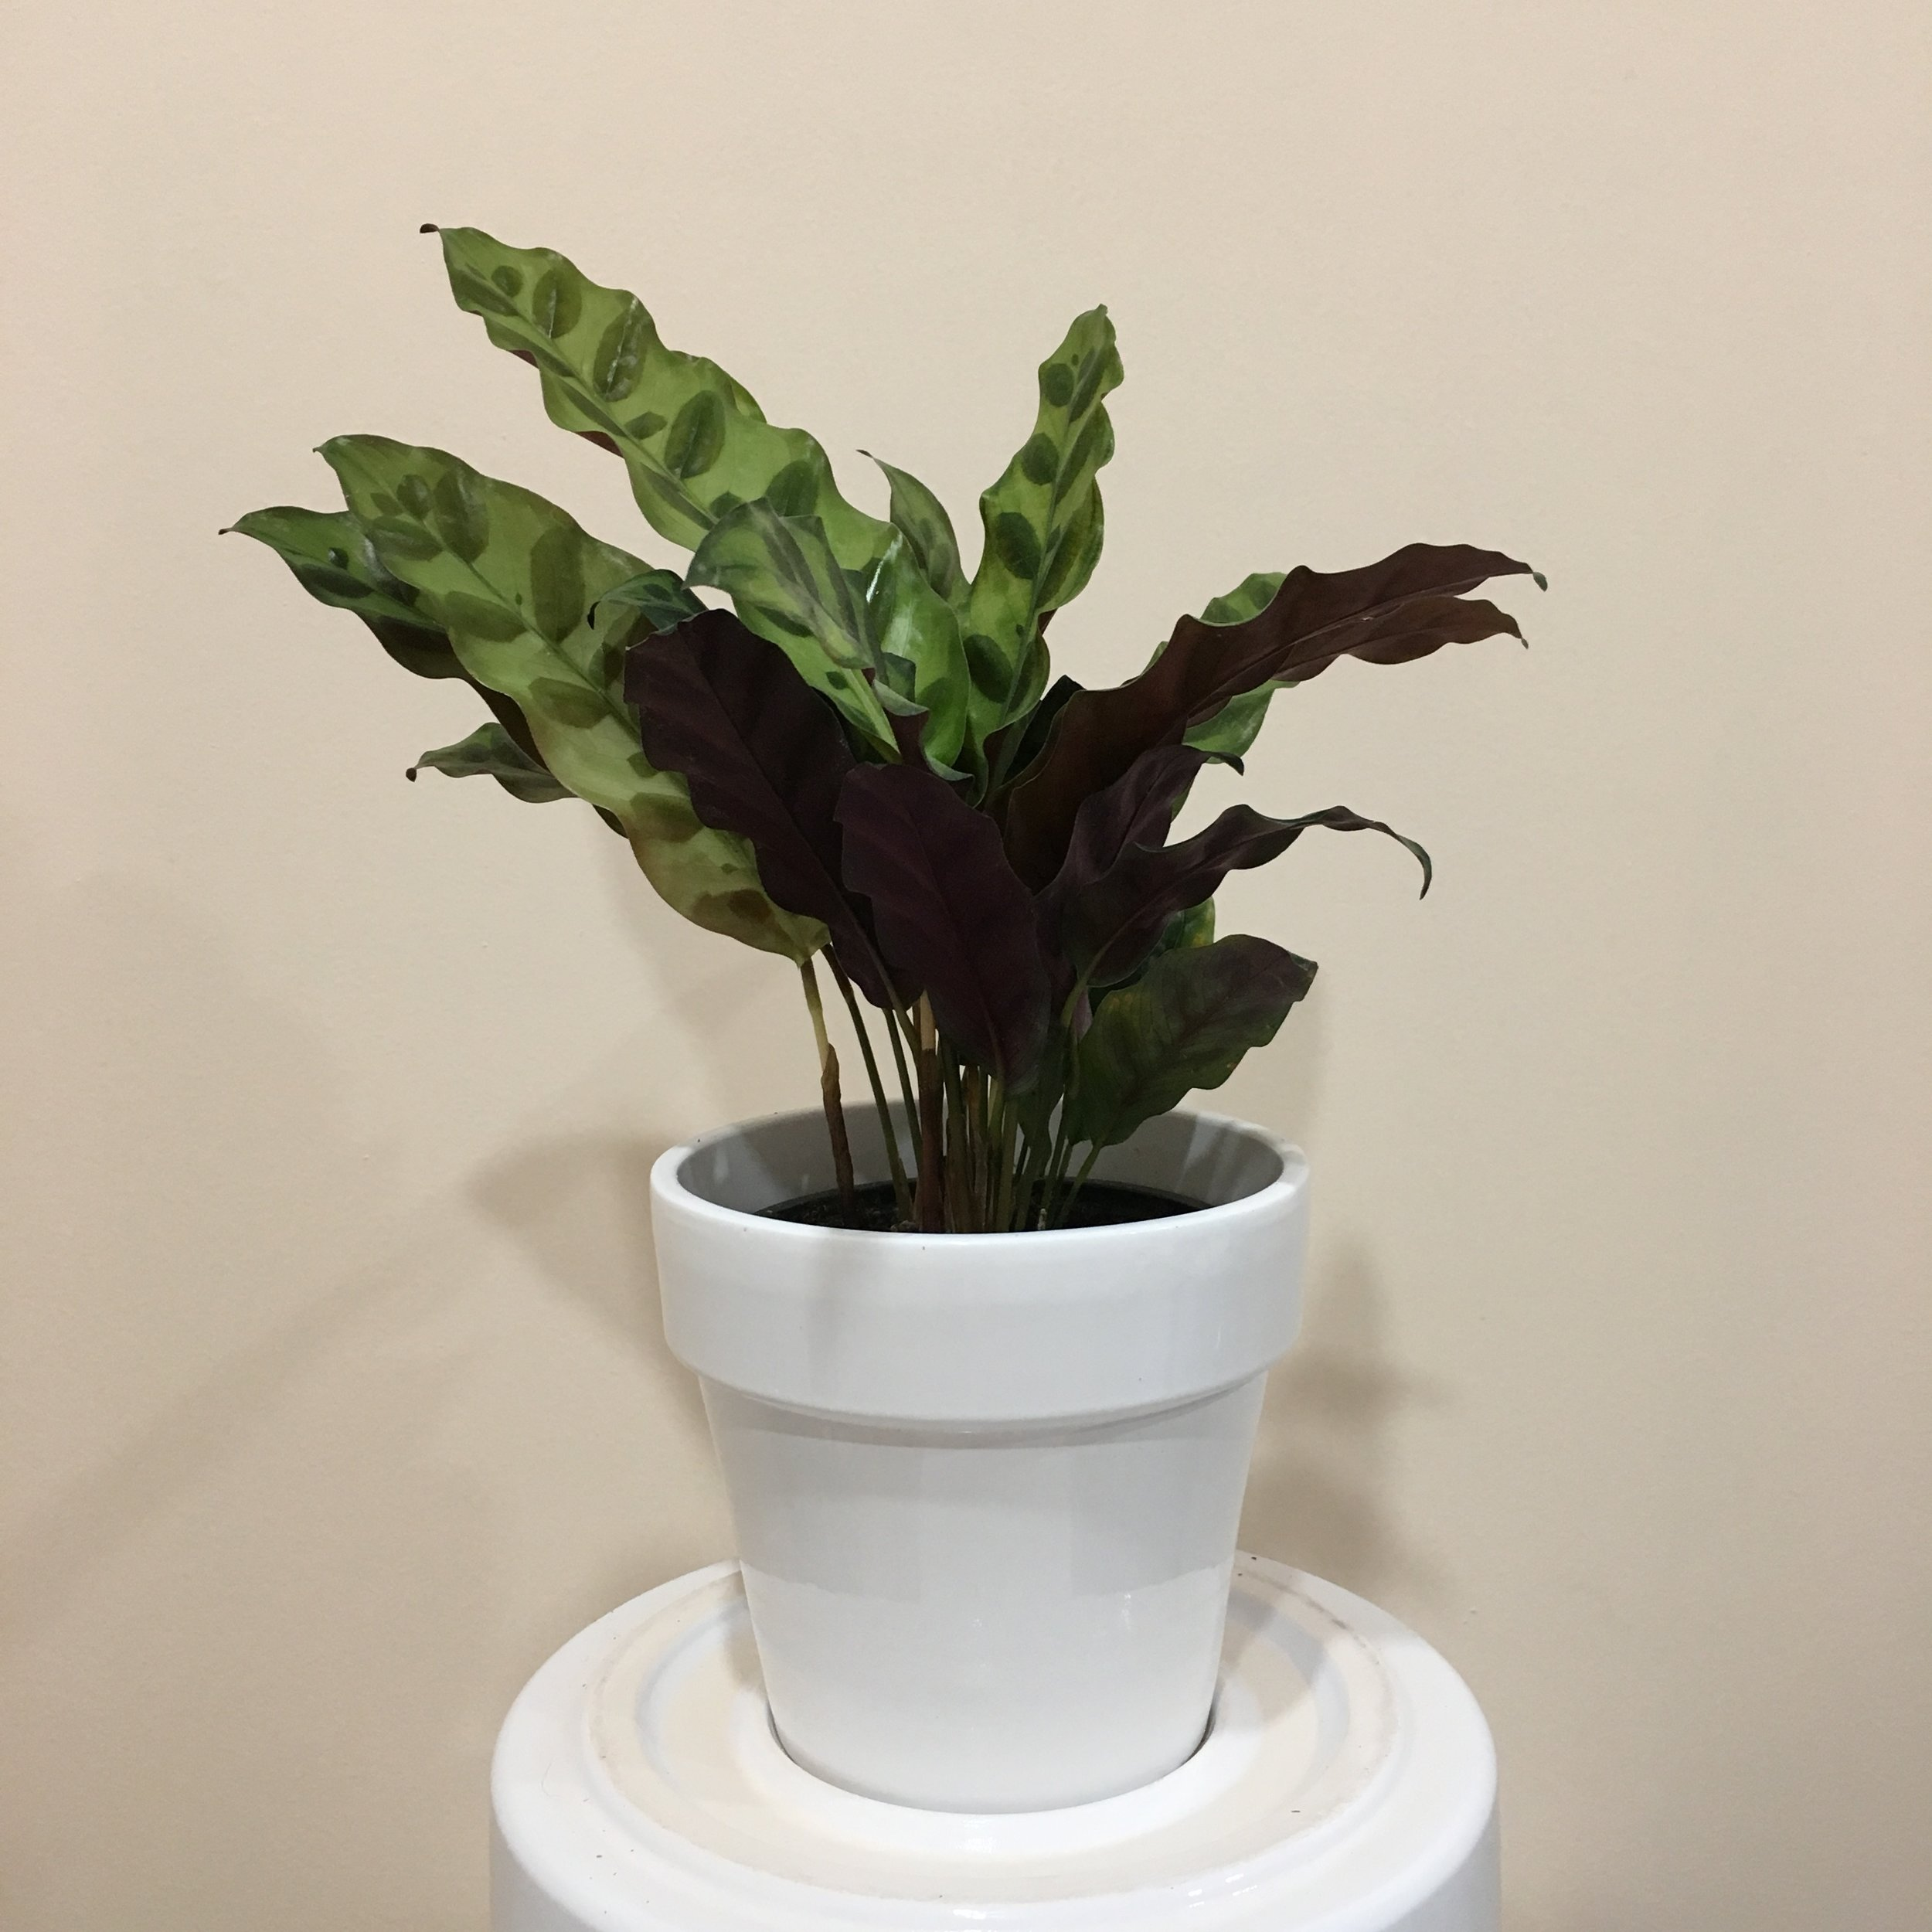 Calathea Rattlesnake - Light - Bright, indirect light.Water - The soil should be kept moist, allowing it to dry a bit in between watering. Watering can be done once a week to every ten days. Calathea rattlesnake also require high humidity, so you can mist the foliage daily.Origin - South AmericaTip - Calatheas are a fantastic plant to purify air, and have eye catching foliage. Calatheas are called 'living plants' because they close their leaves at night. There is a small joint between the leaf and the stem, and different amounts of light move the leaves.